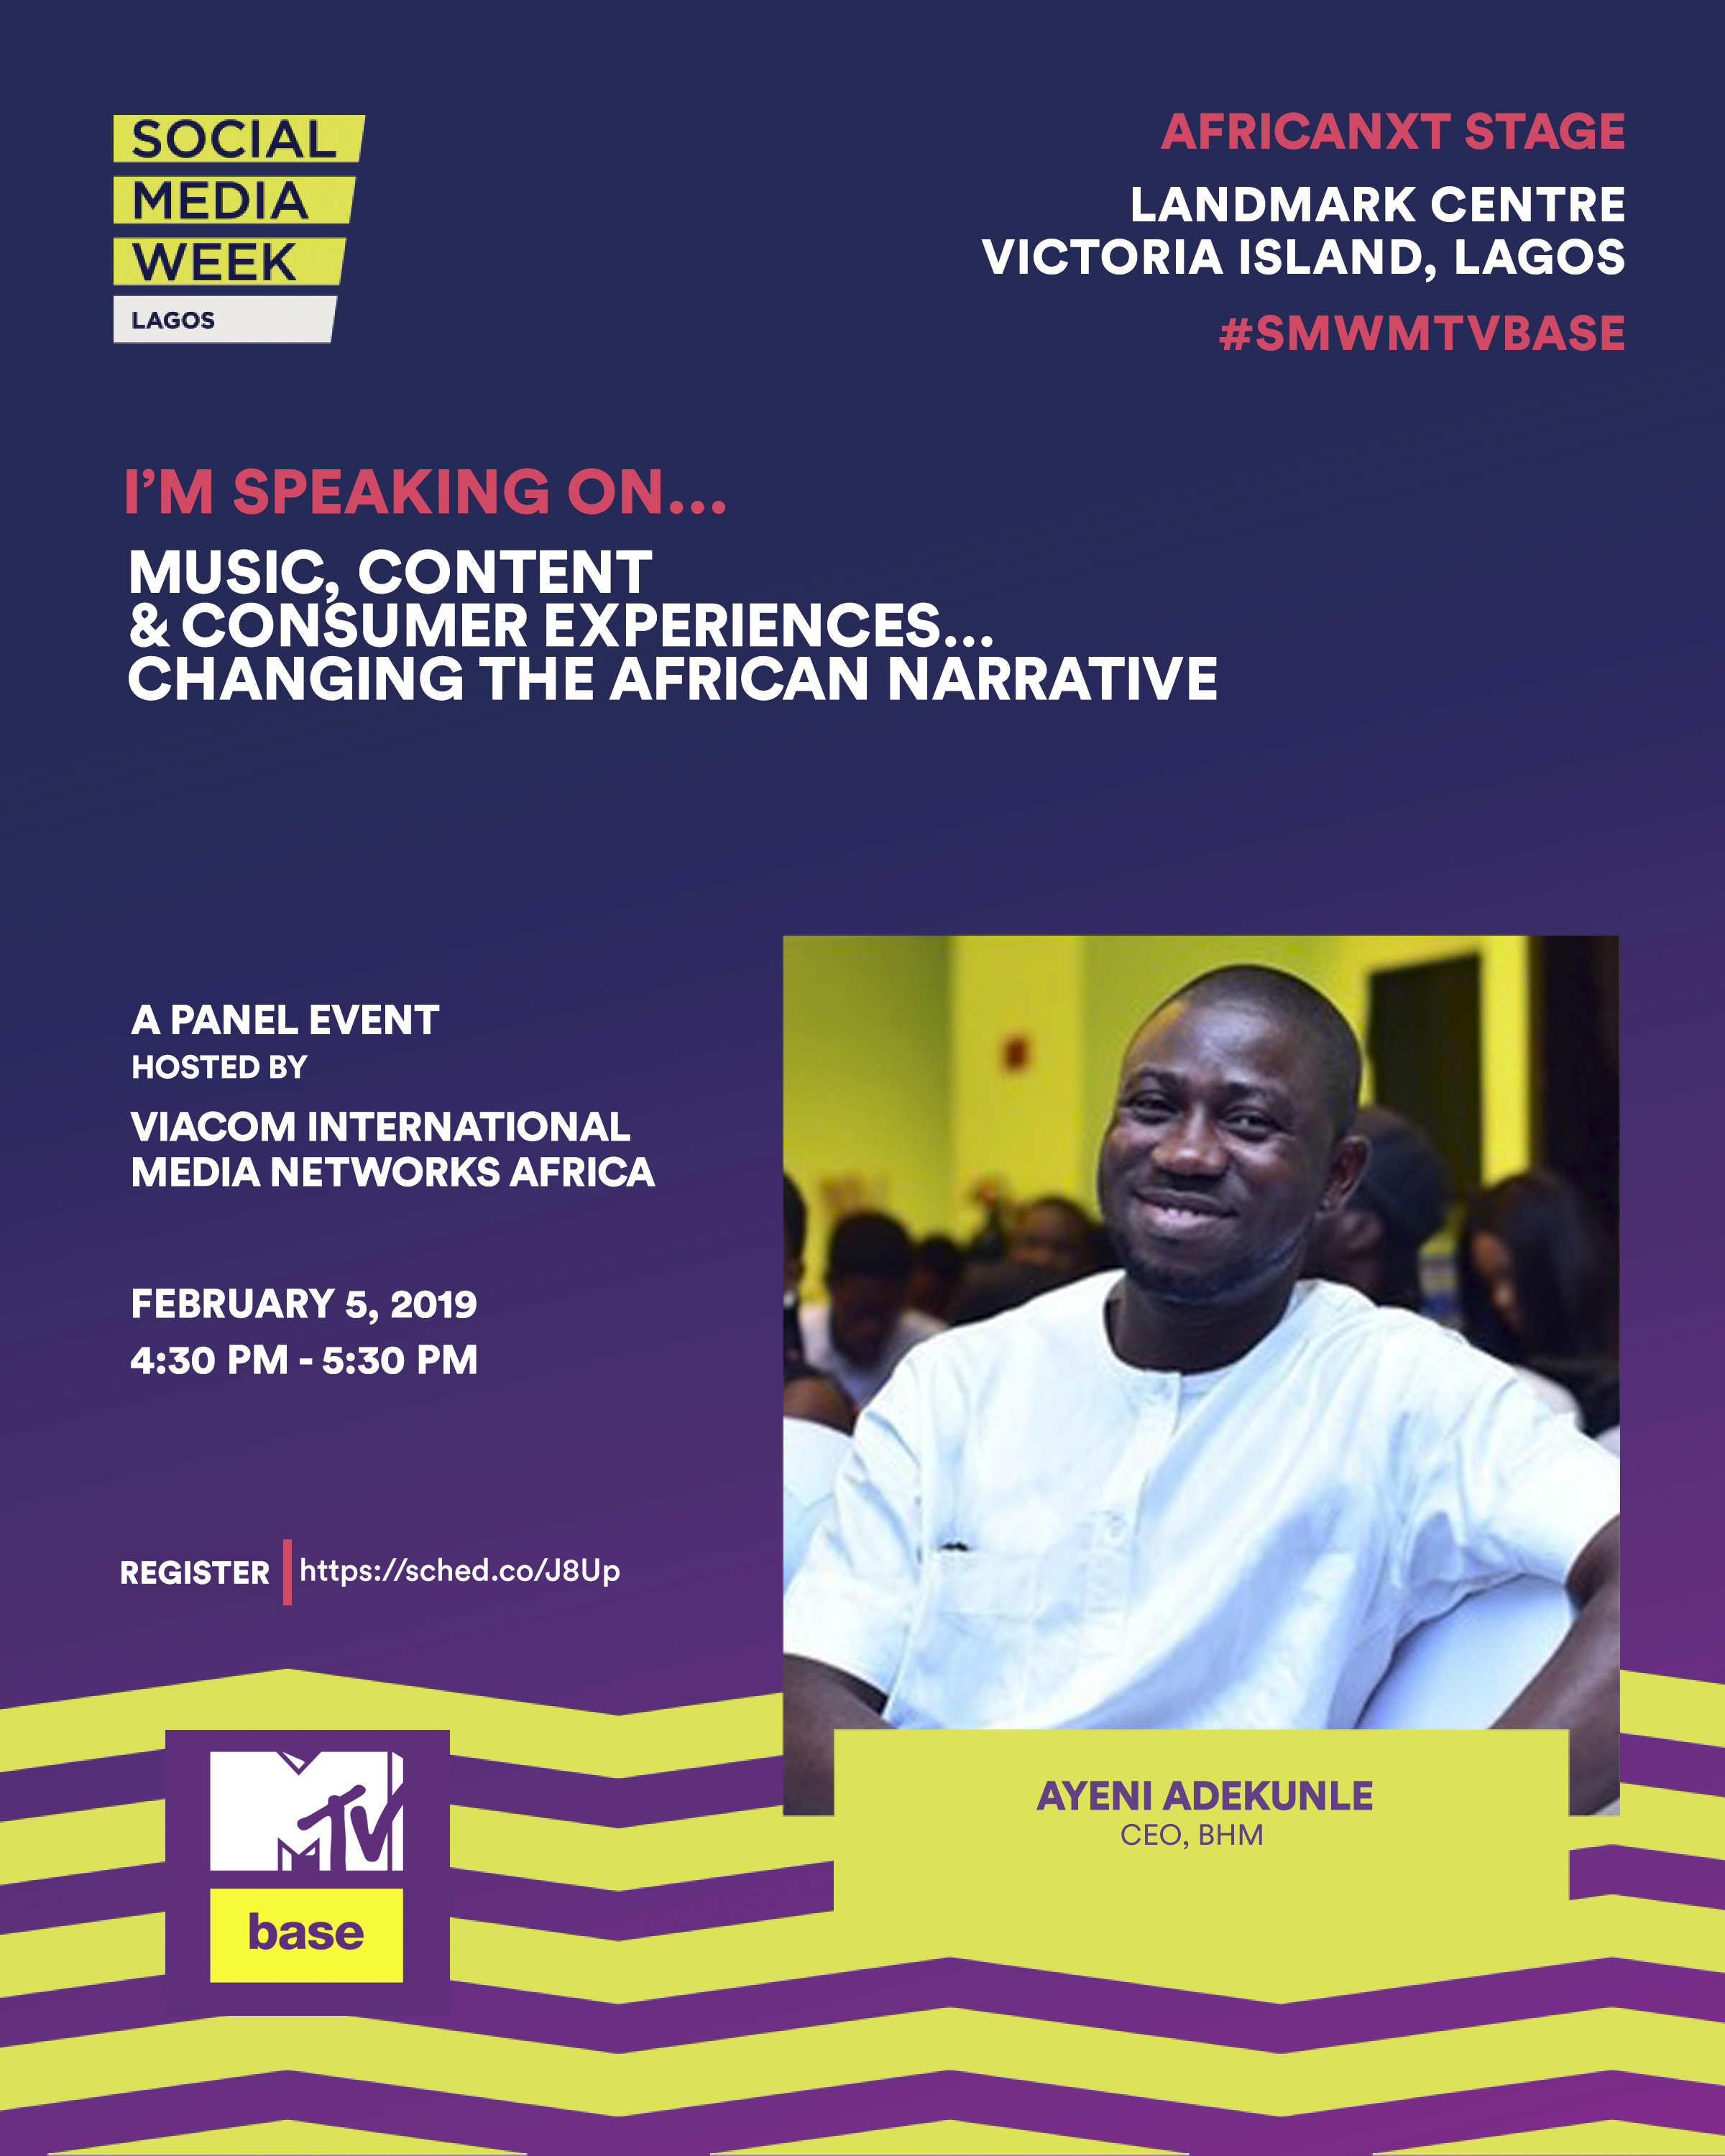 Social media week: BHM's Ayeni Adekunle joins Steve Babaeko, Basketmouth, others for Viacom session